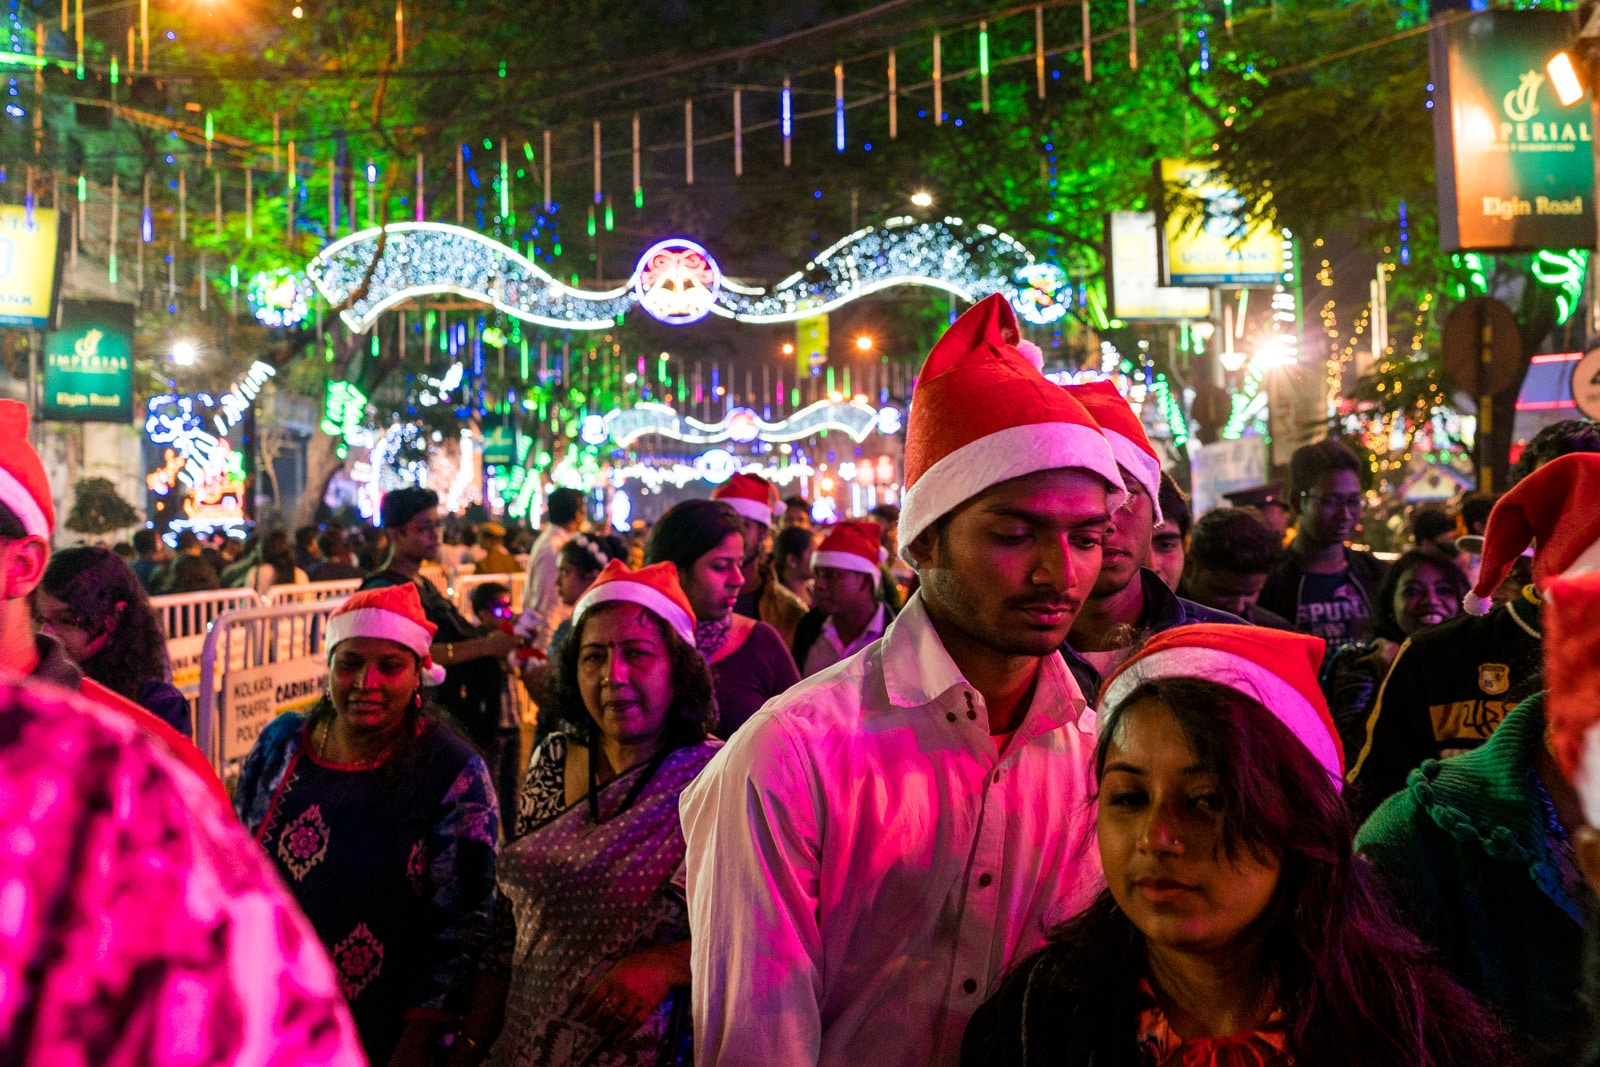 Christmas in Kolkata, India - Pedestrians in Santa Claus hats on Park Street on Christmas Eve - Lost With Purpose travel blog